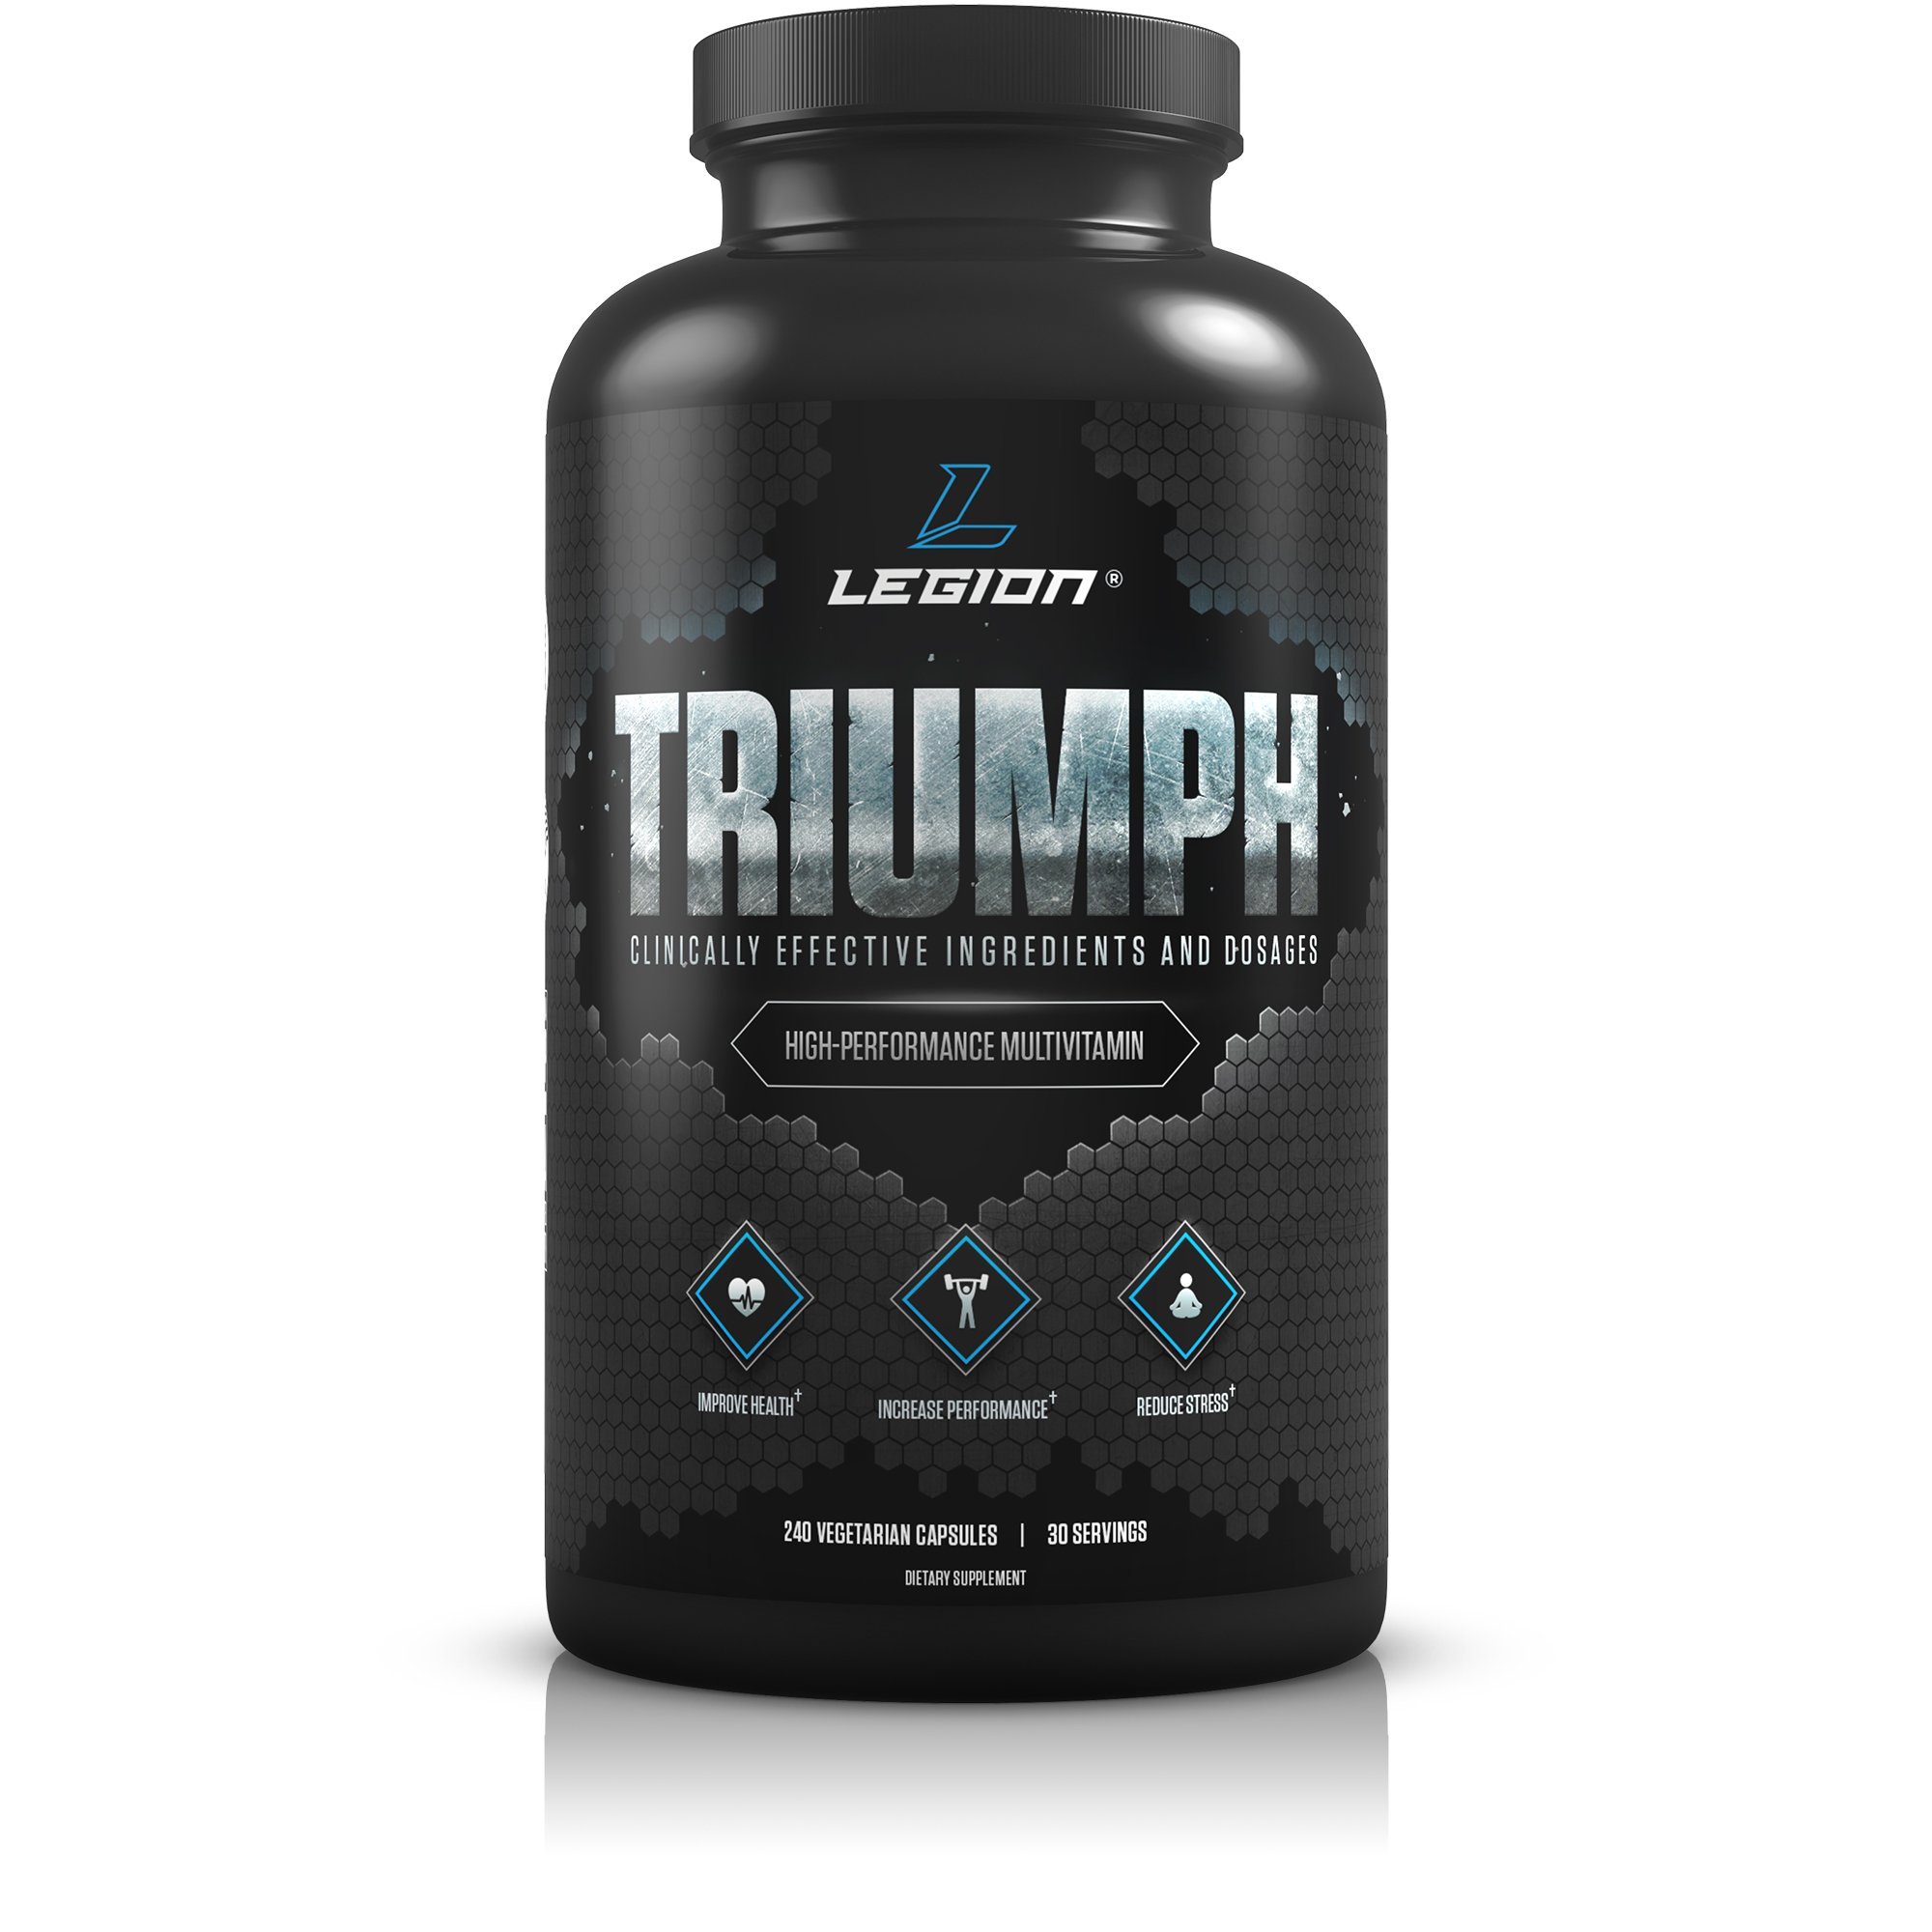 Legion Triumph Daily Multivitamin Supplement - Vitamins and Minerals for Anxiety, Depression, Stress, Immune System, Heart Health, Energy, Sports & Bodybuilding Workouts. 30 Svgs.